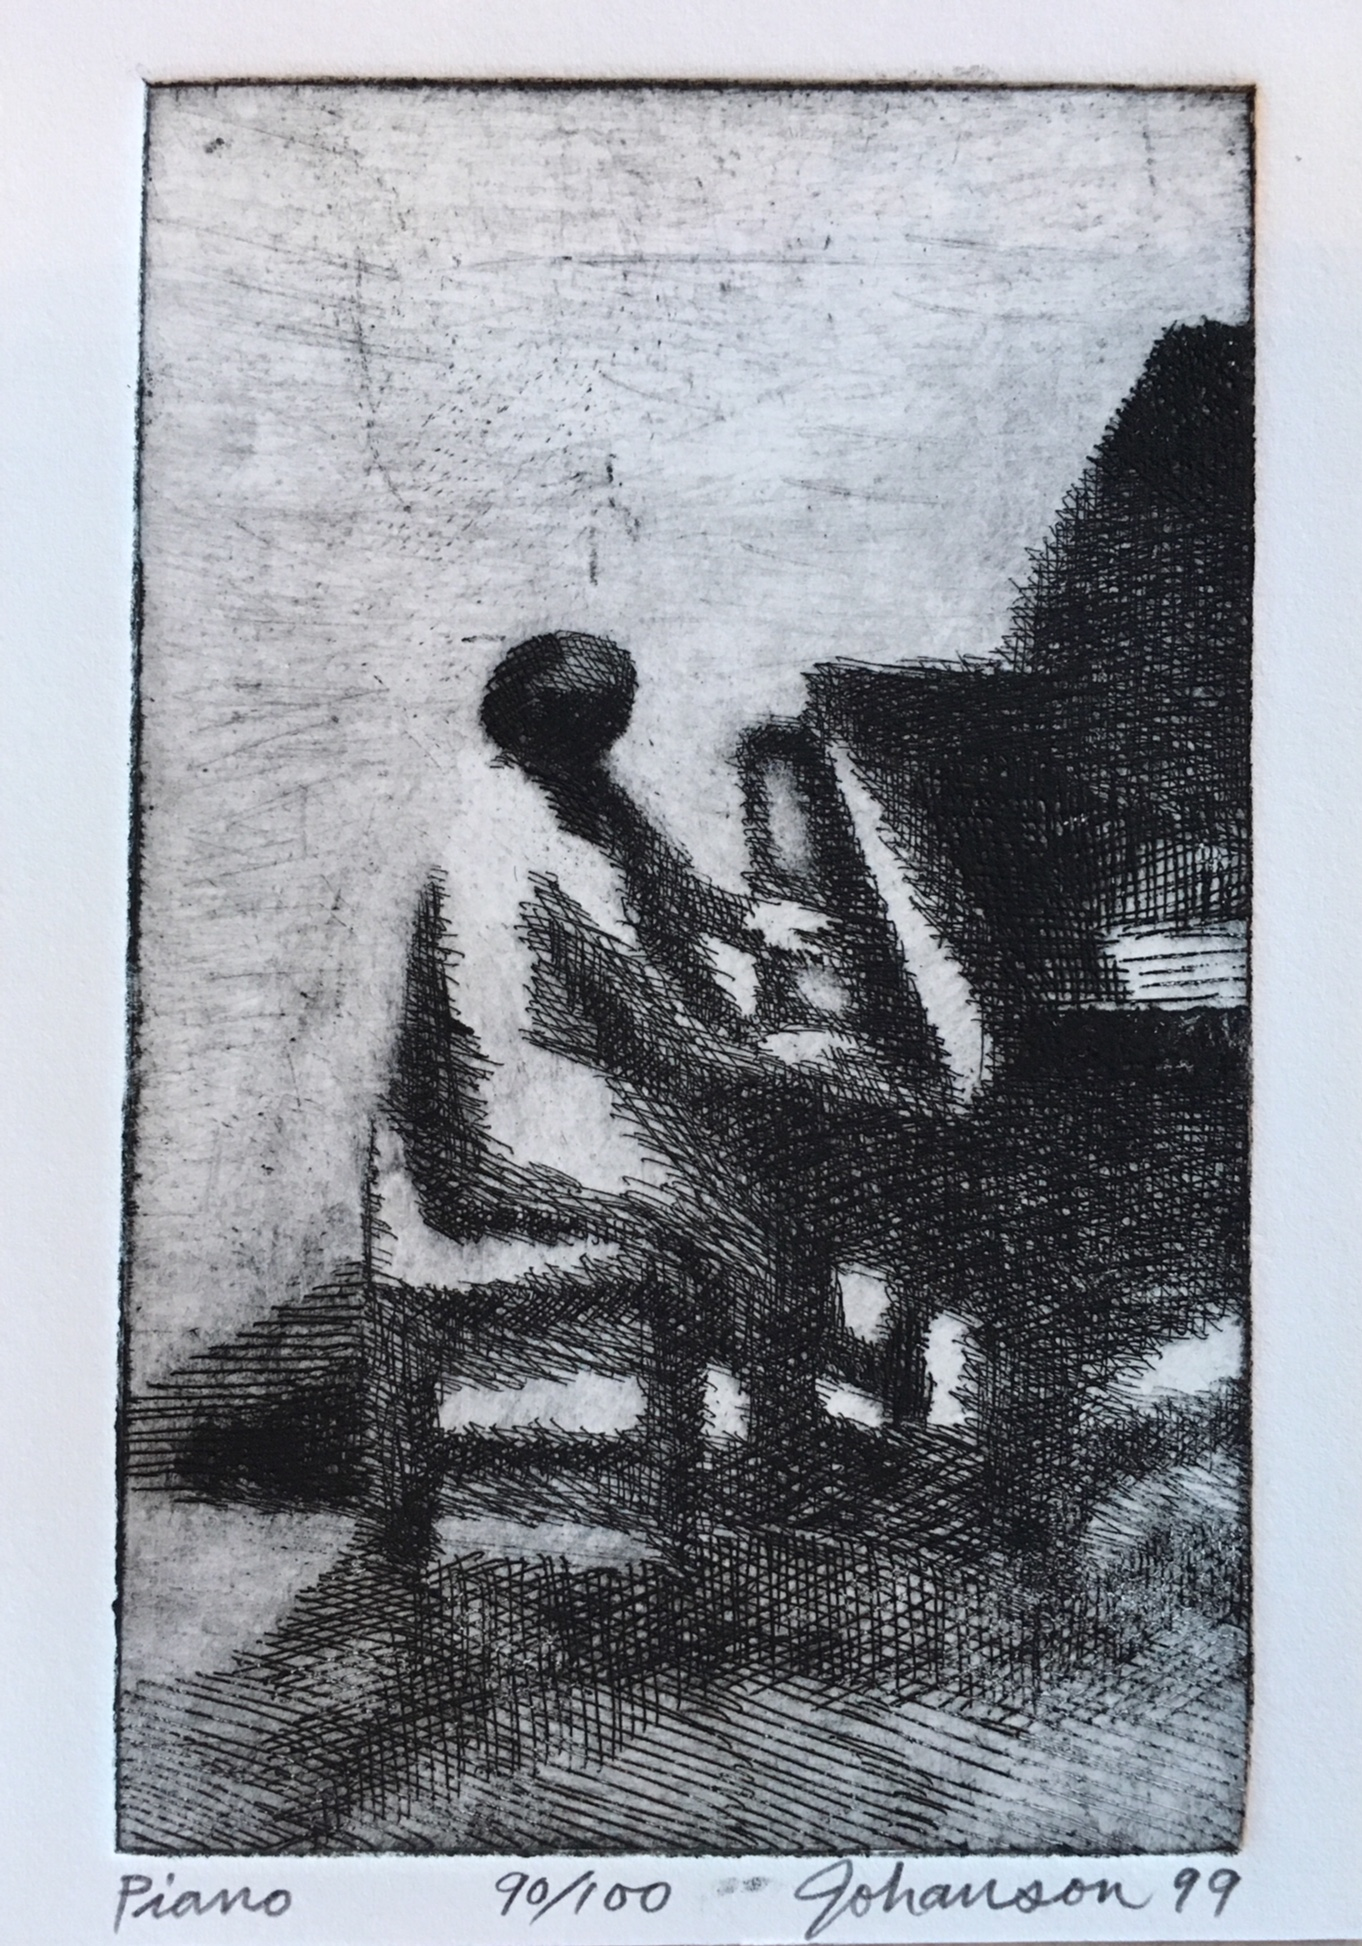 George Johanson, Piano, etching